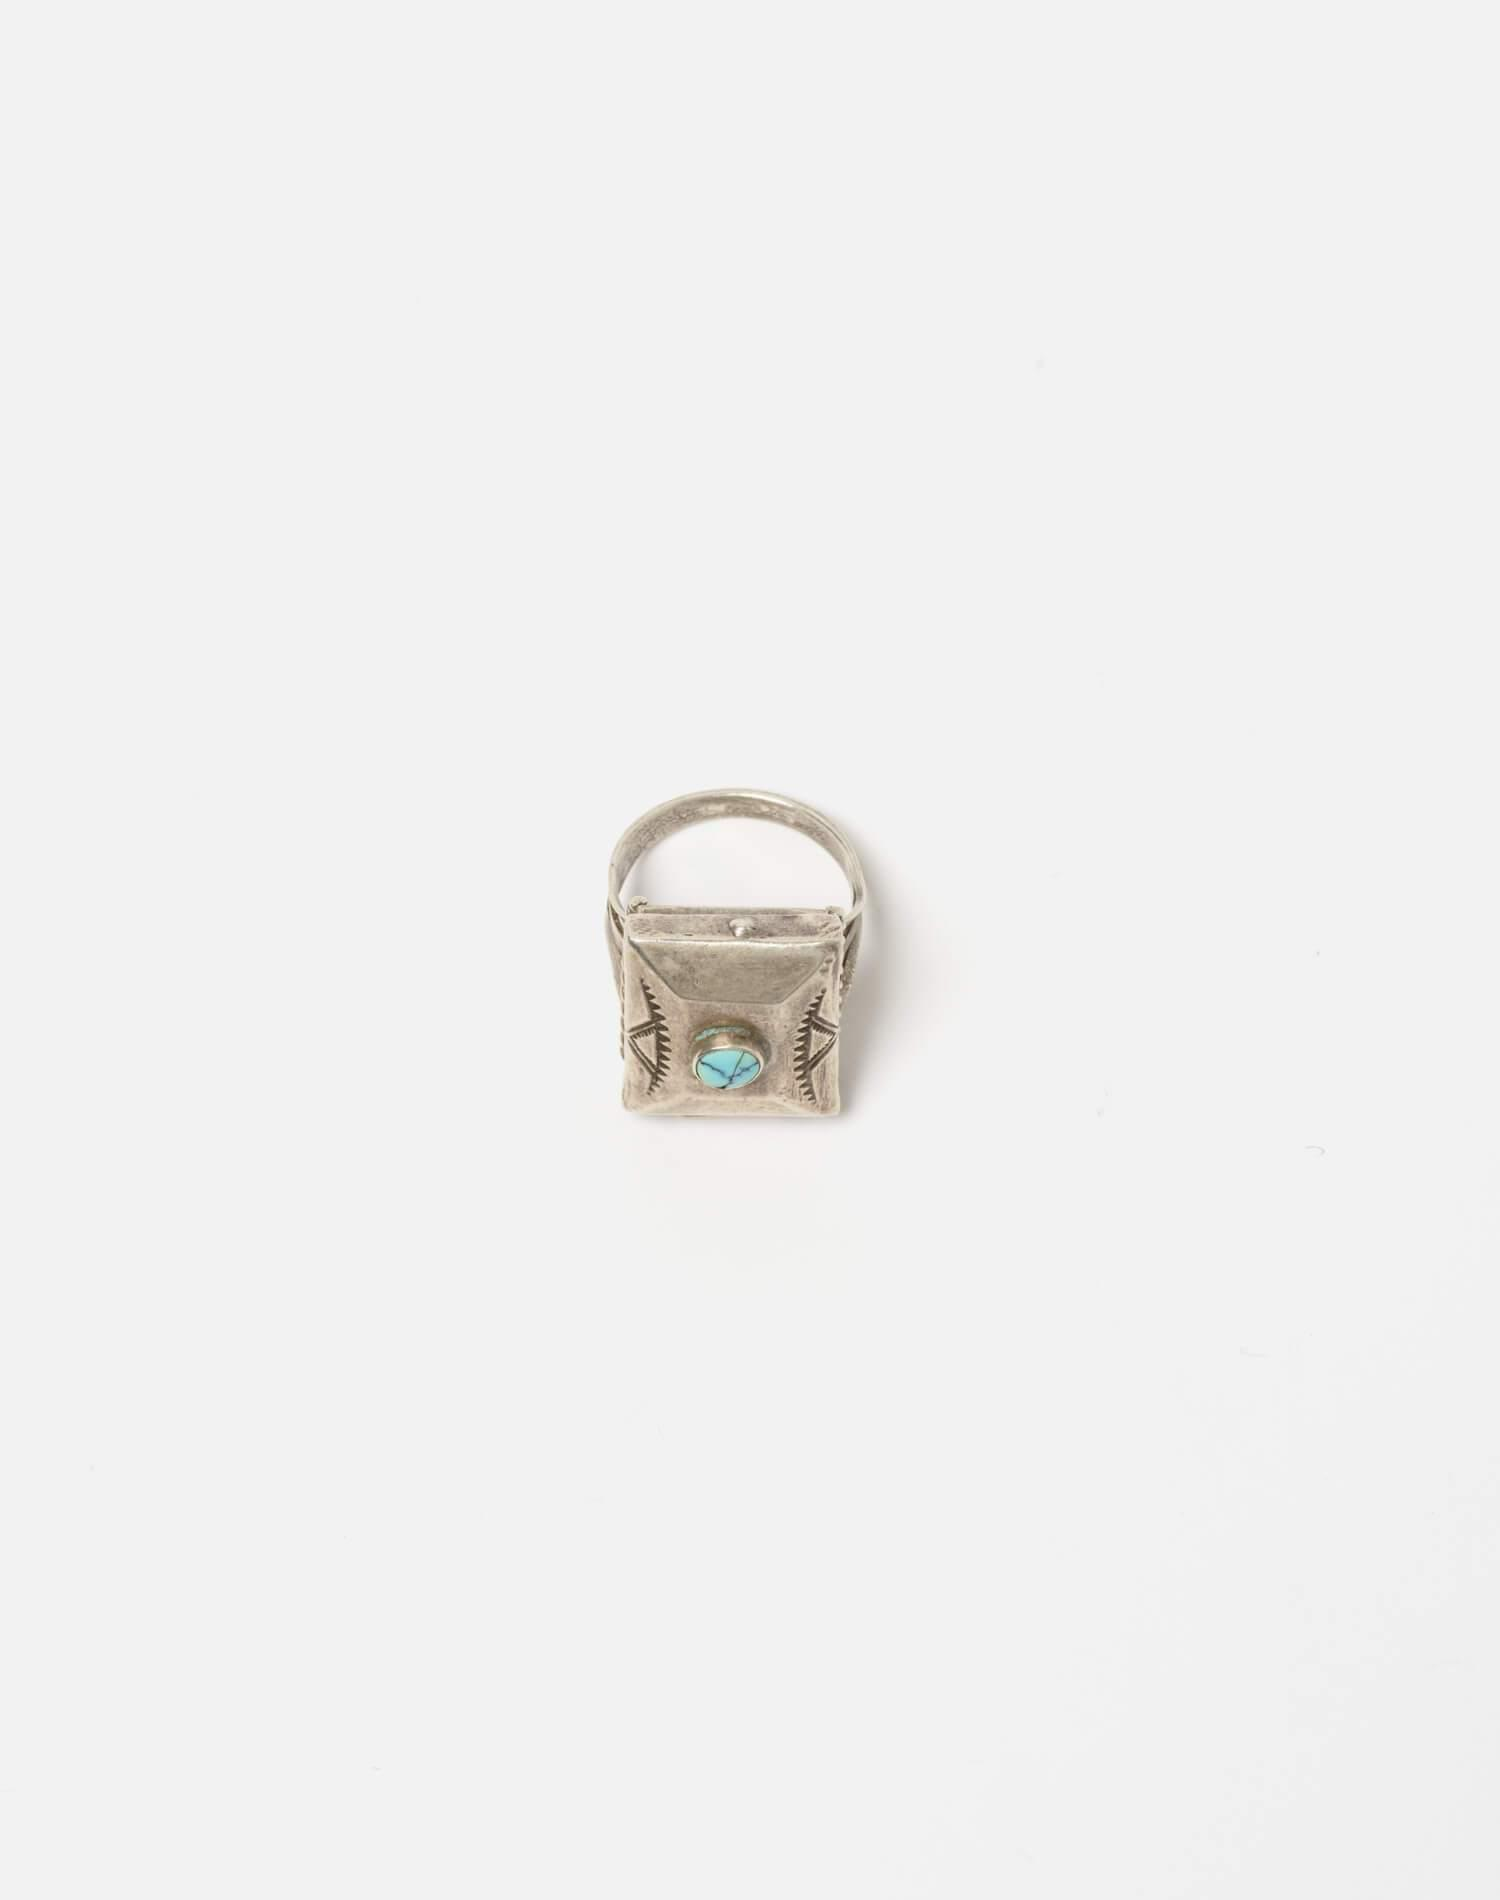 1940s Navajo Sterling And Turquoise Stash Box Ring - #99 4